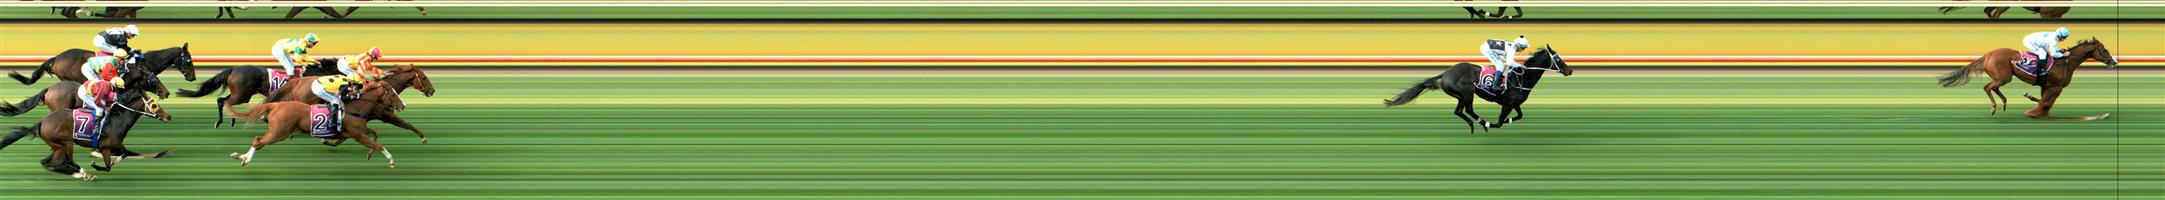 HORSHAM Race 2 No. 3 Done Good @ $3.50 (1.5 UNITS WIN)  Result: Unplaced at SP $5.50. Enjoyed a nice trail behind the leaders in the run but dropped out on the home turn as it was placed under pressure. Outcome -1.50 Units.